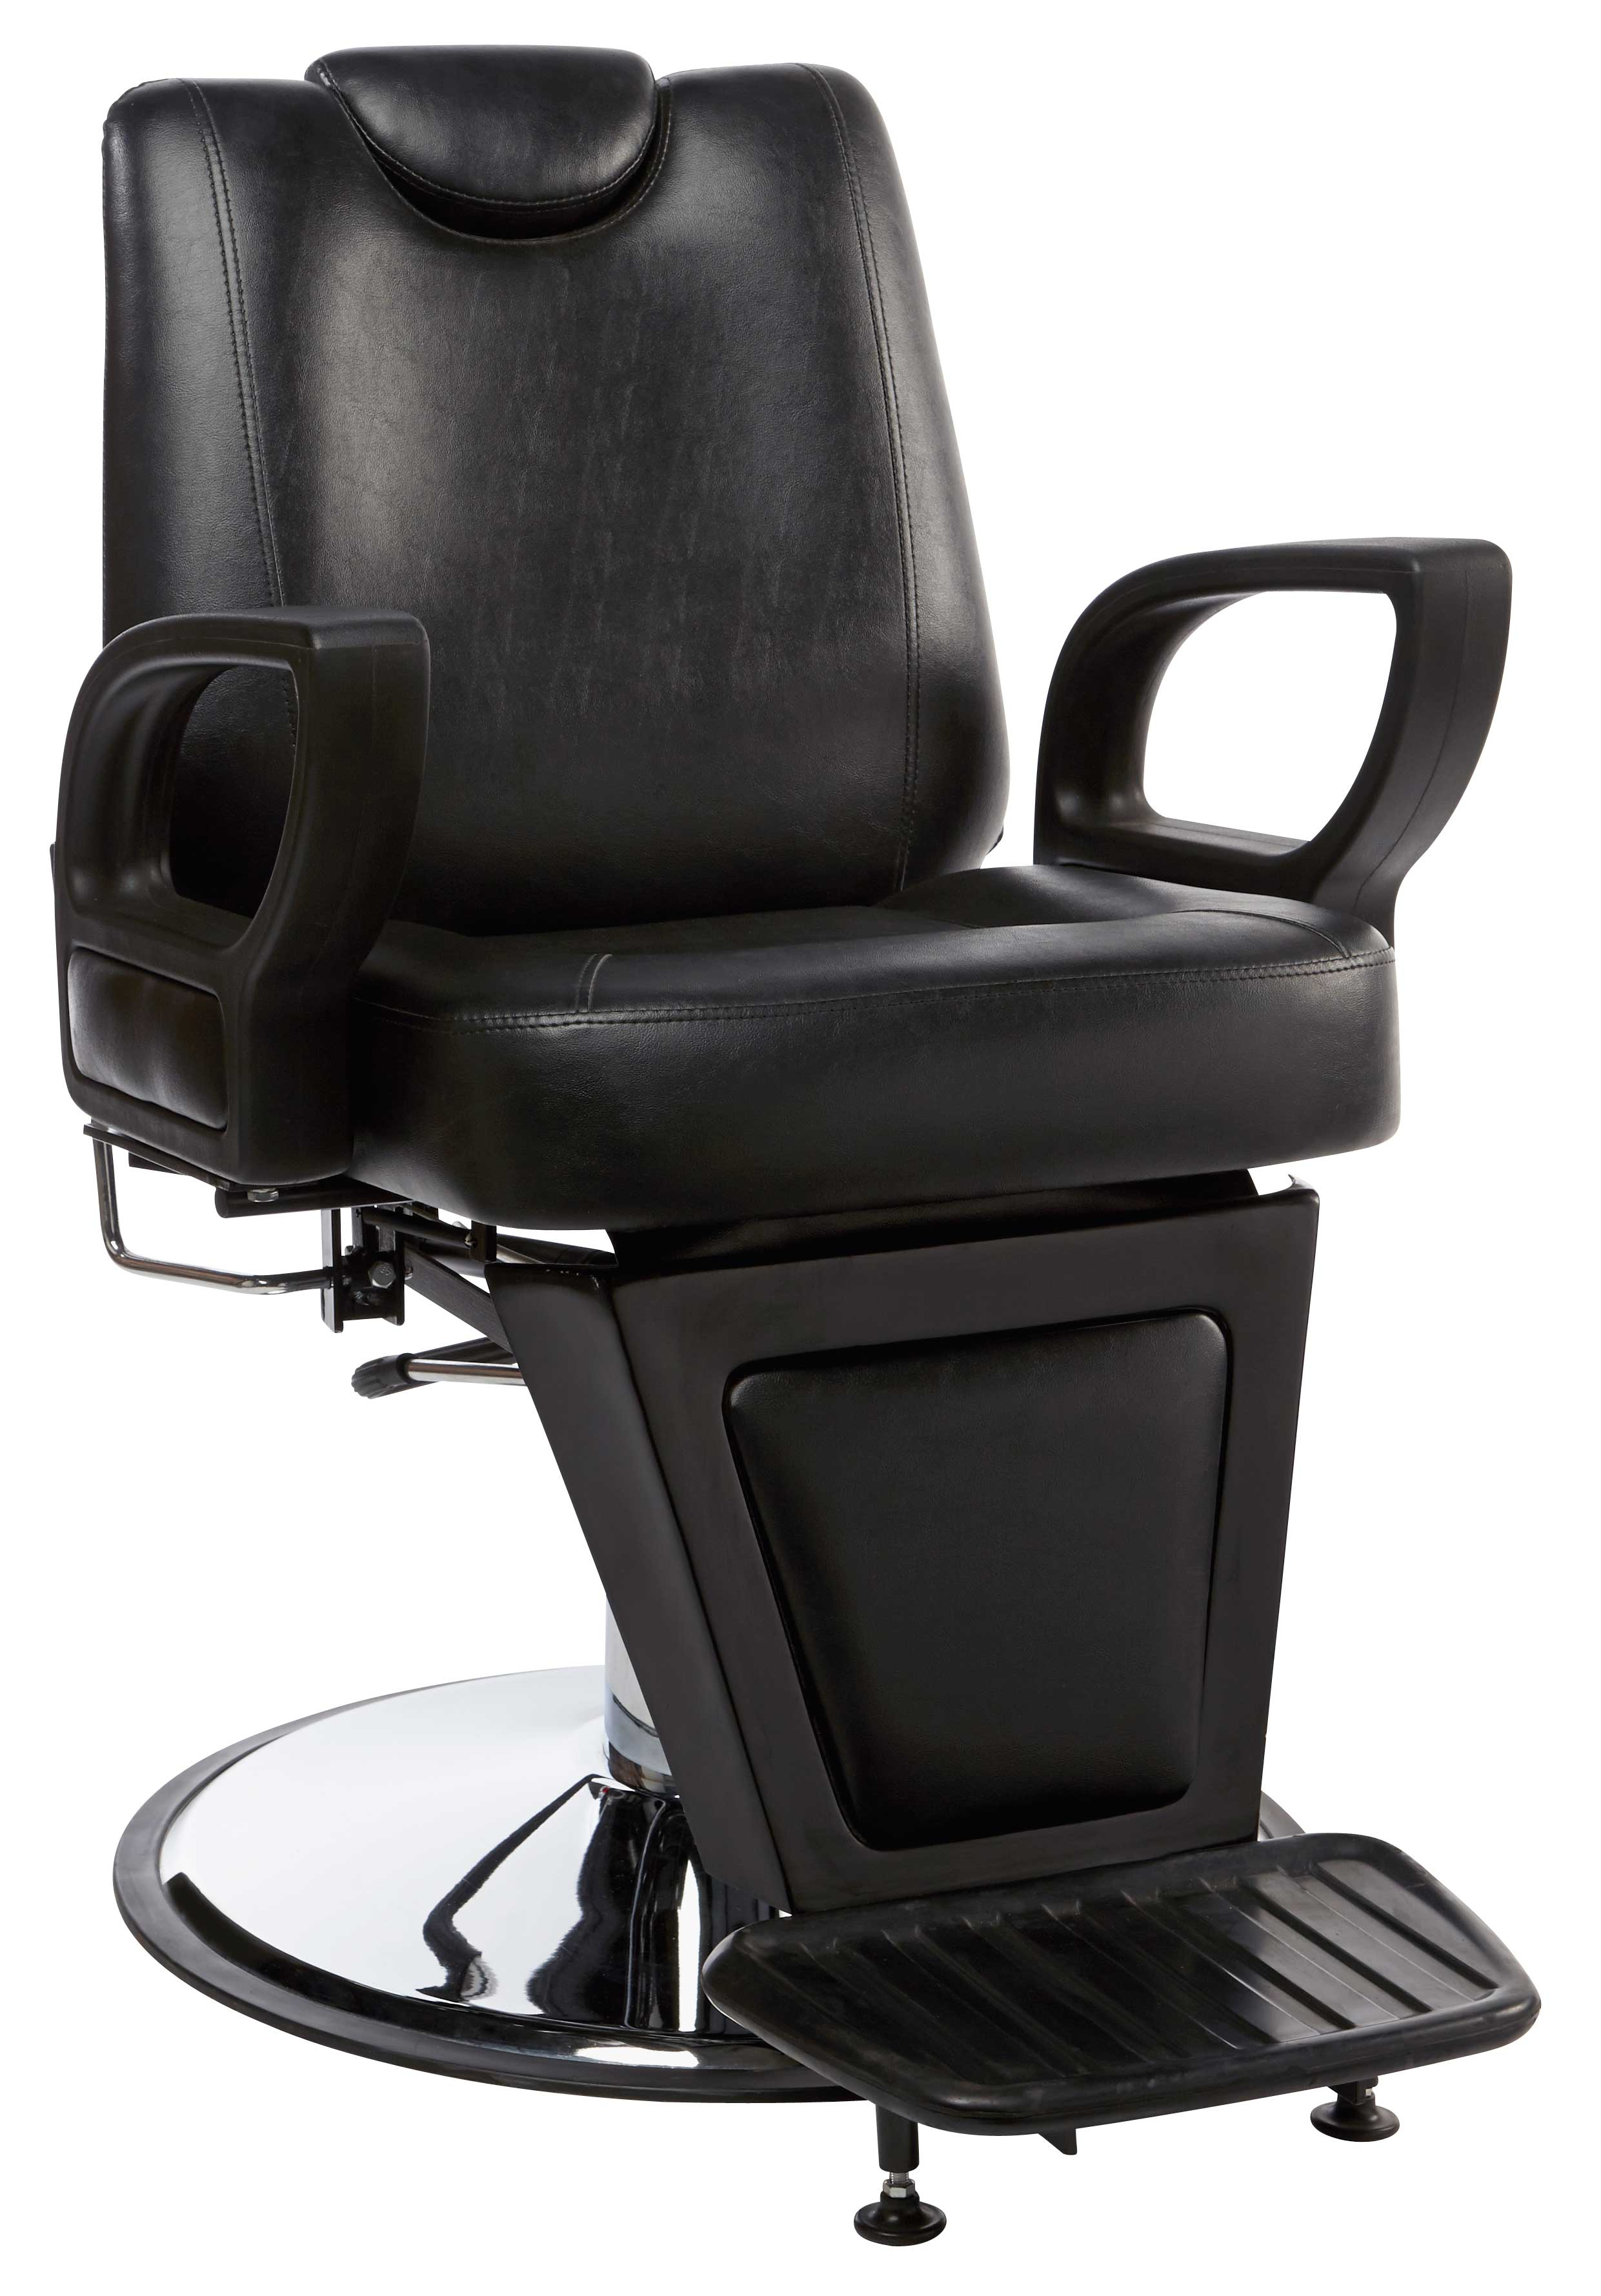 Strong Man Barber Chair